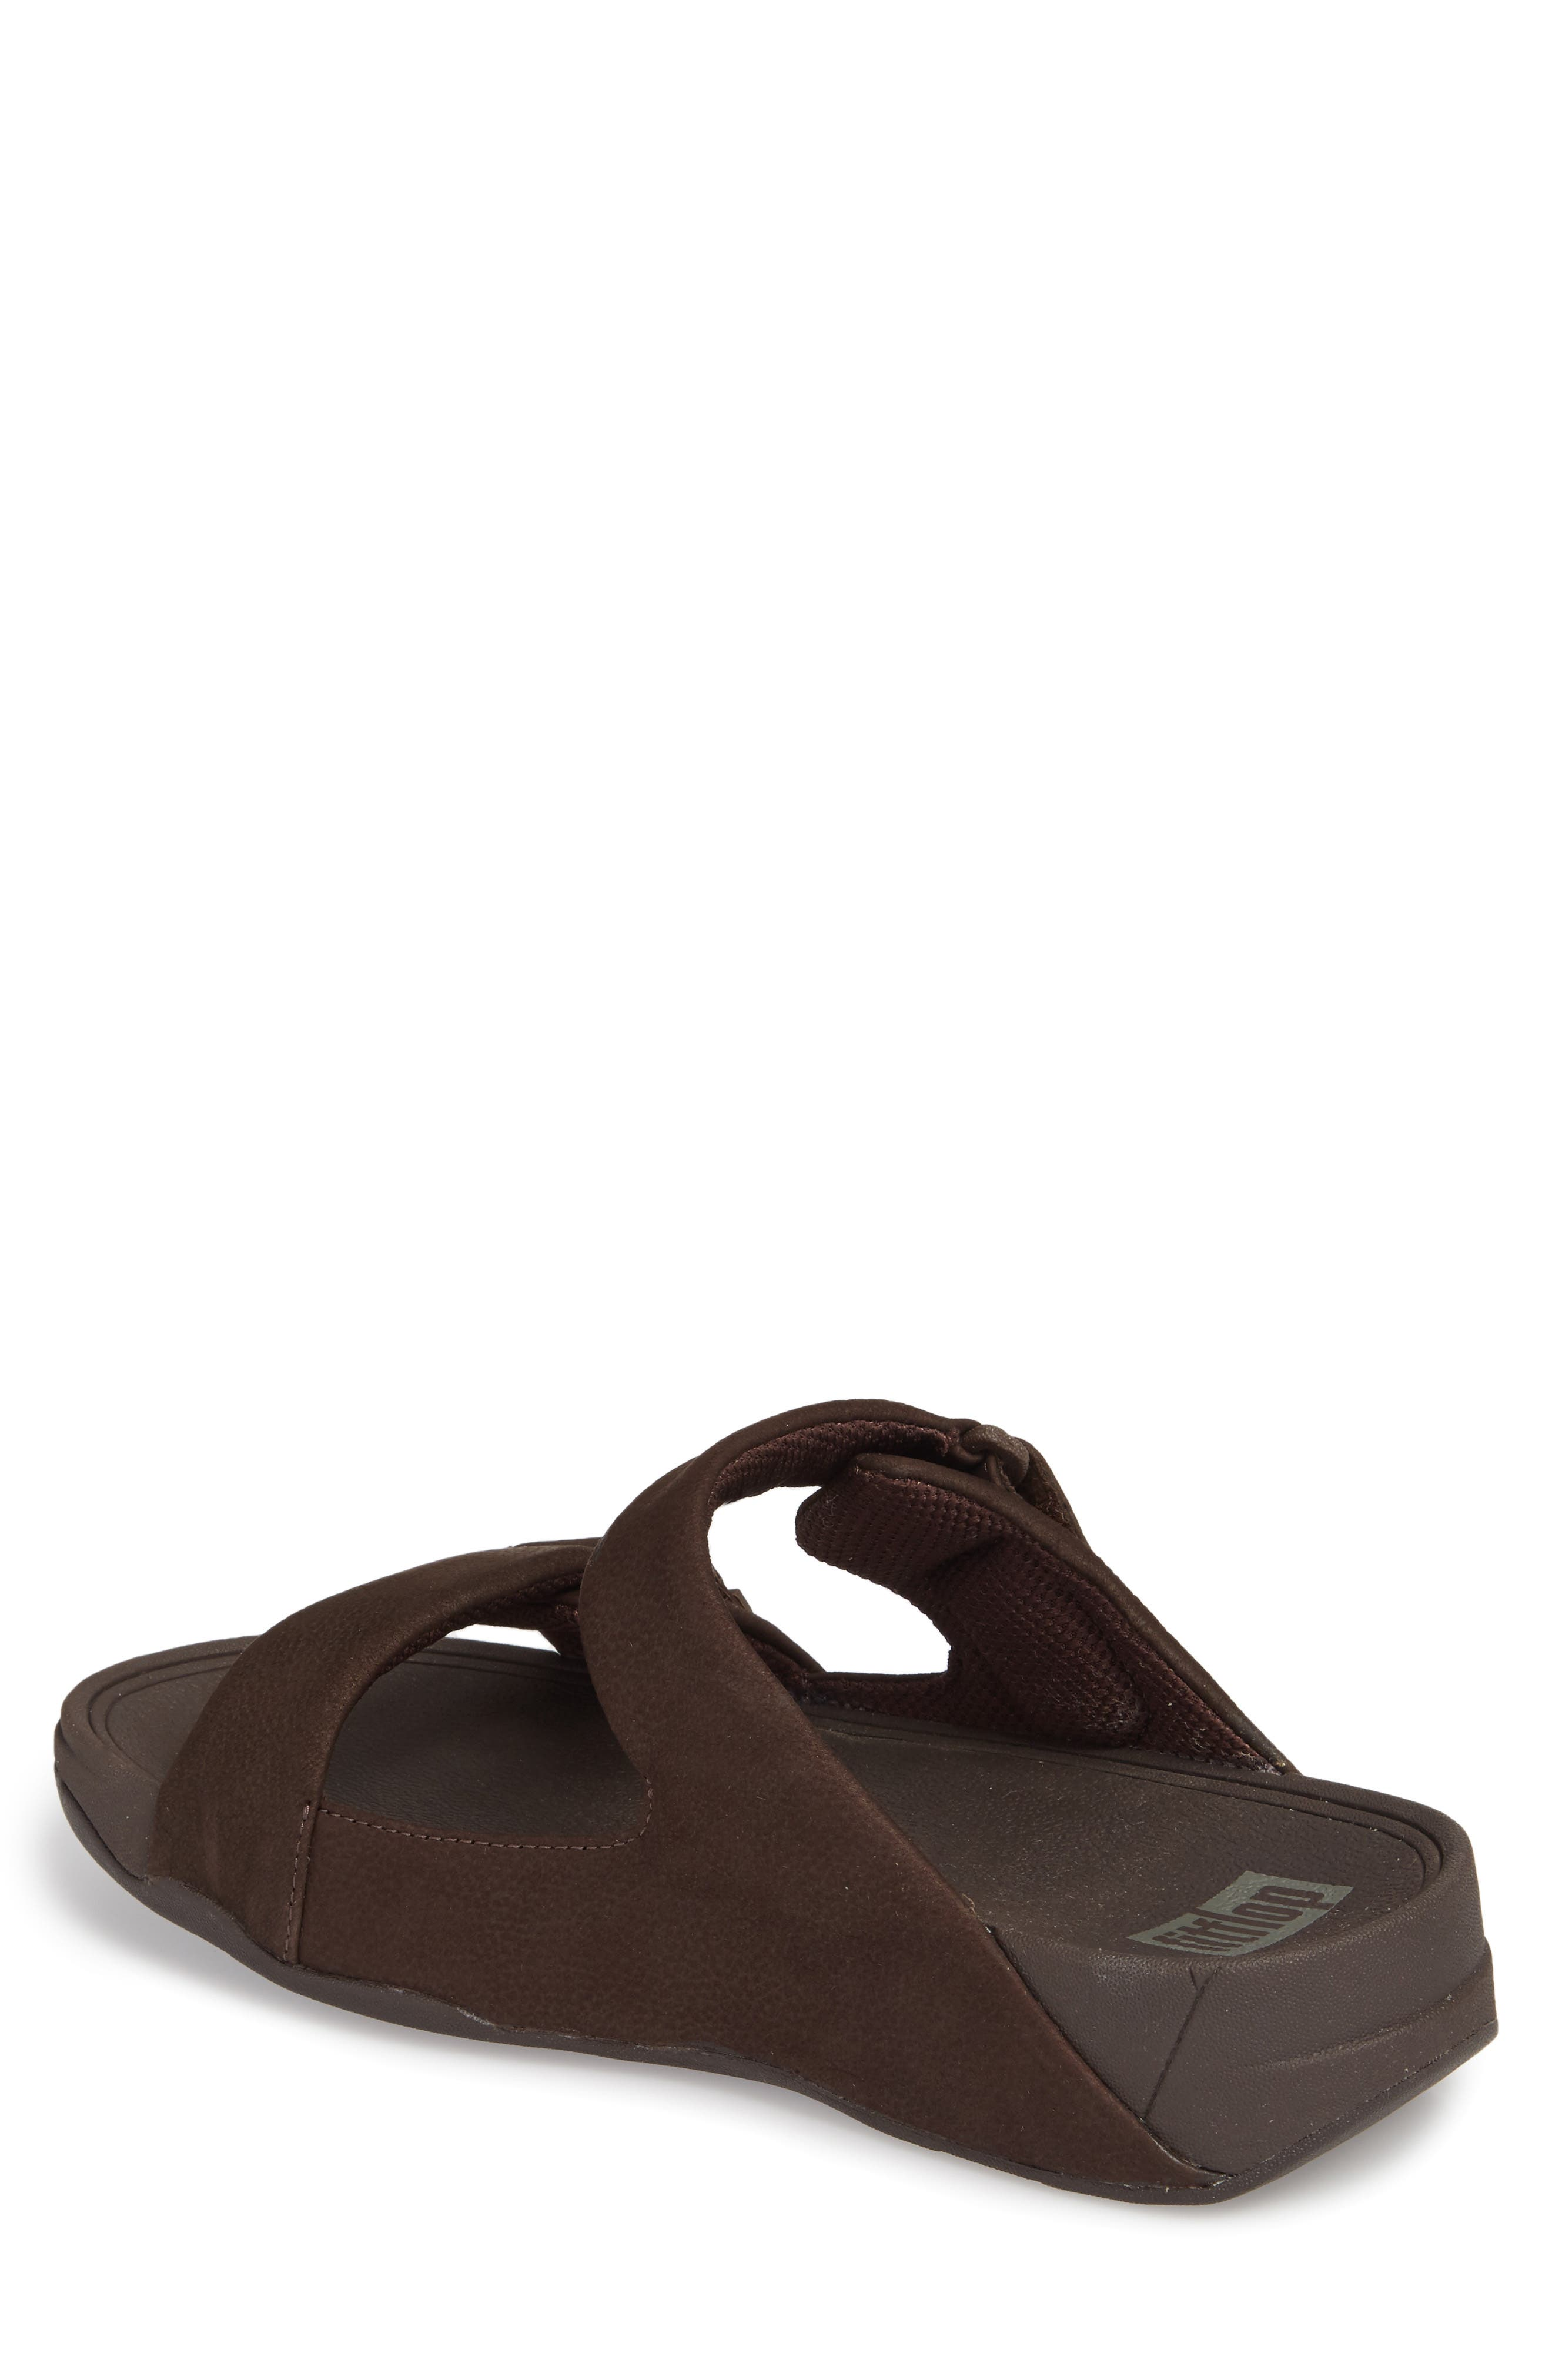 Gogh Sport Slide Sandal,                             Alternate thumbnail 2, color,                             Chocolate Brown